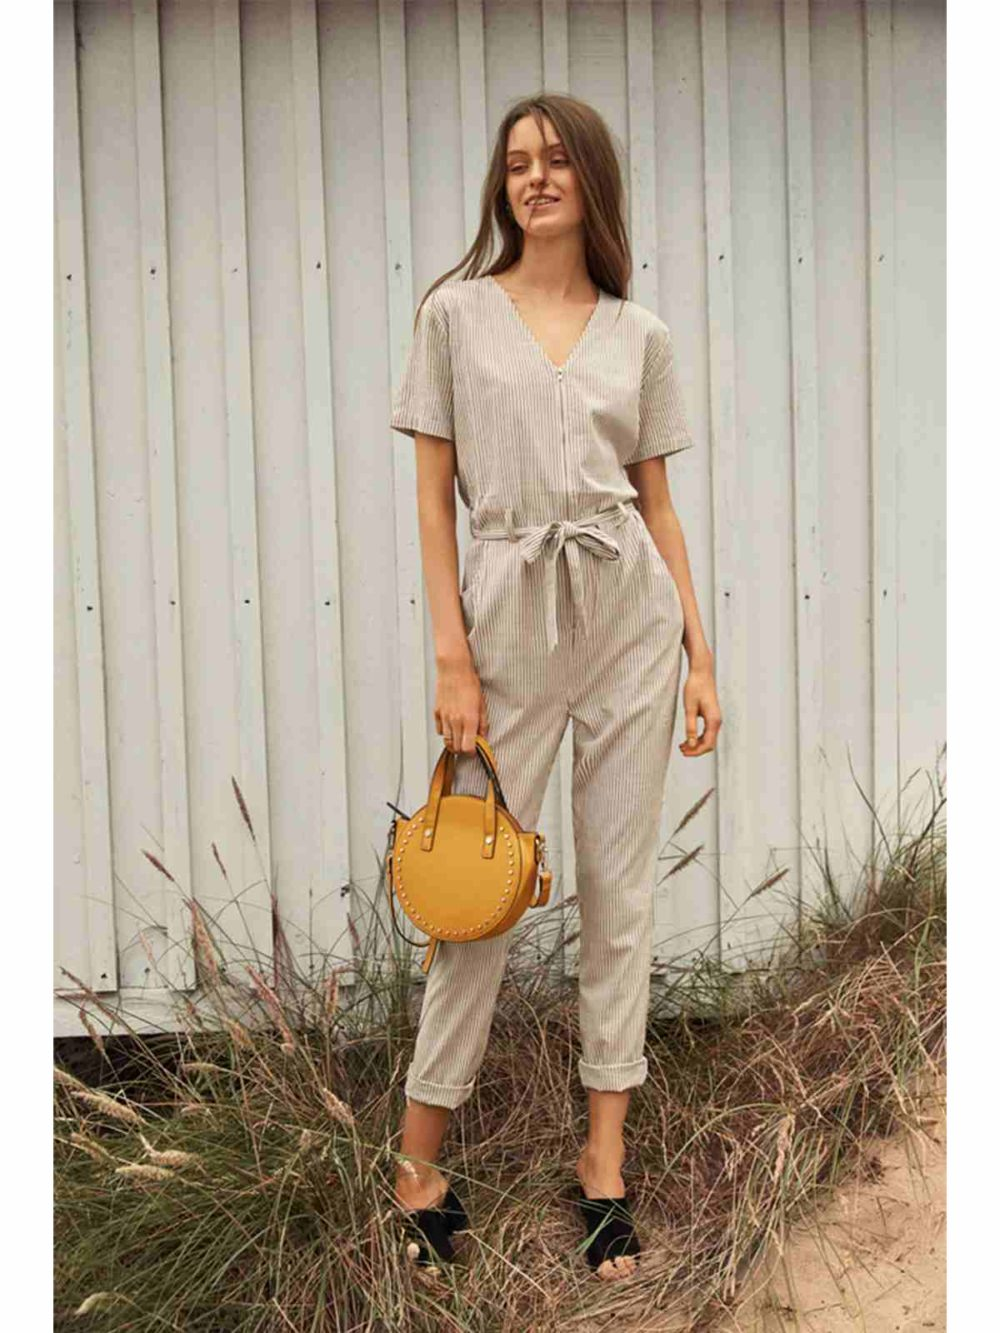 Desta Jumpsuit ICHI Katie Kerr Women's Clothing